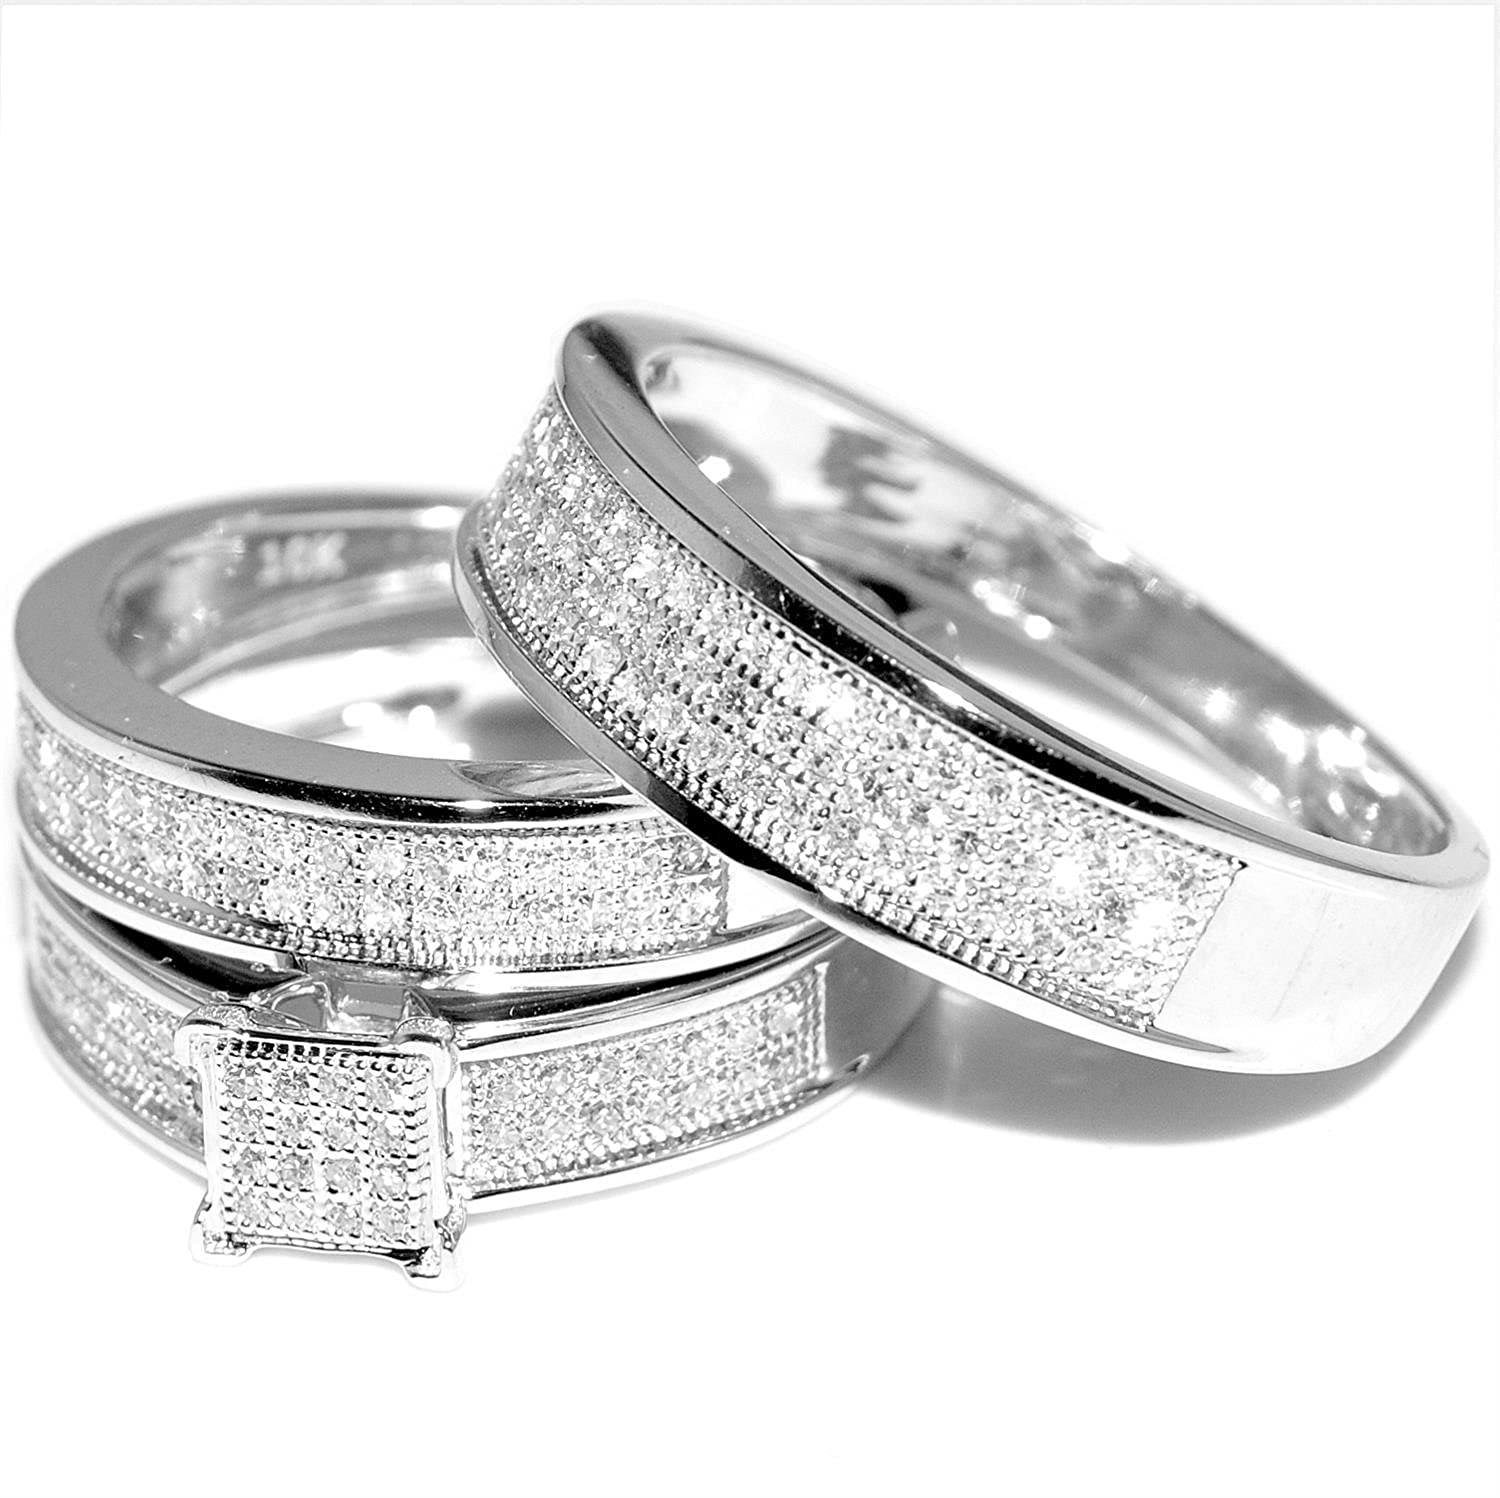 white gold trio wedding set mens womens wedding rings matching 040cttw diamondamazoncom - White Gold Wedding Rings Sets